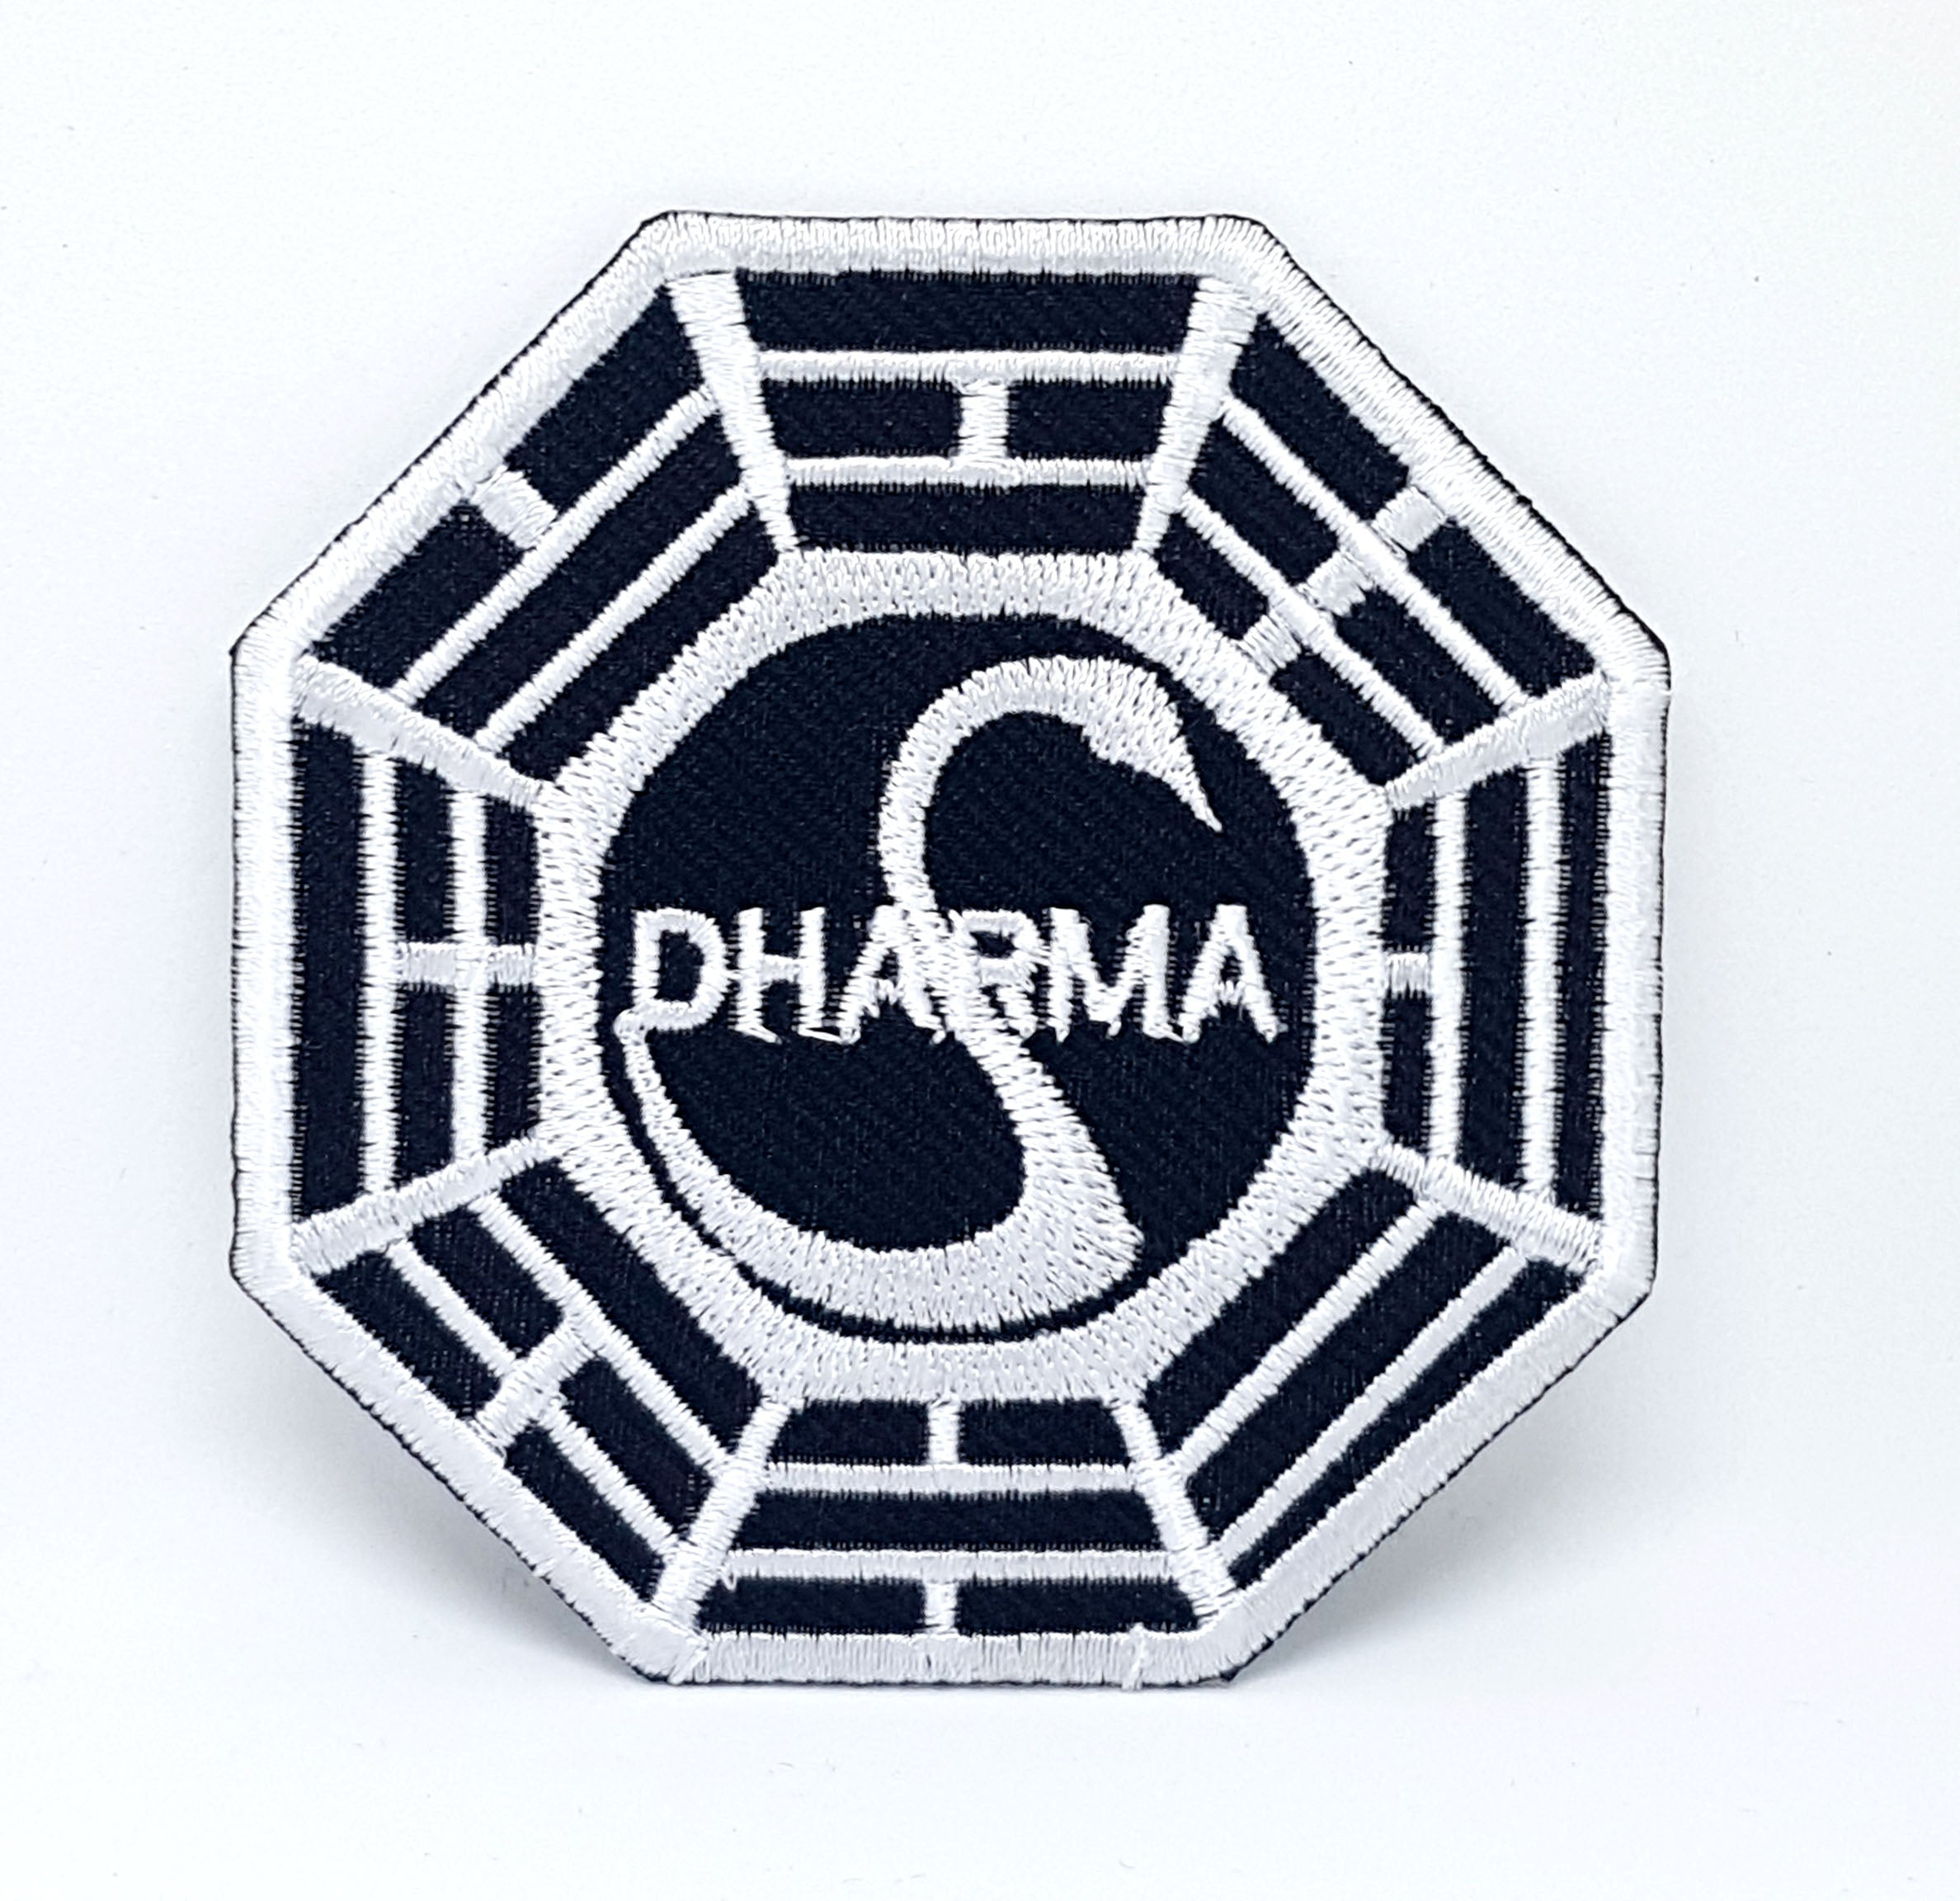 Dharma LOST Swan Initiative Iron/sew On Embroidered Patch - Patches-Badges